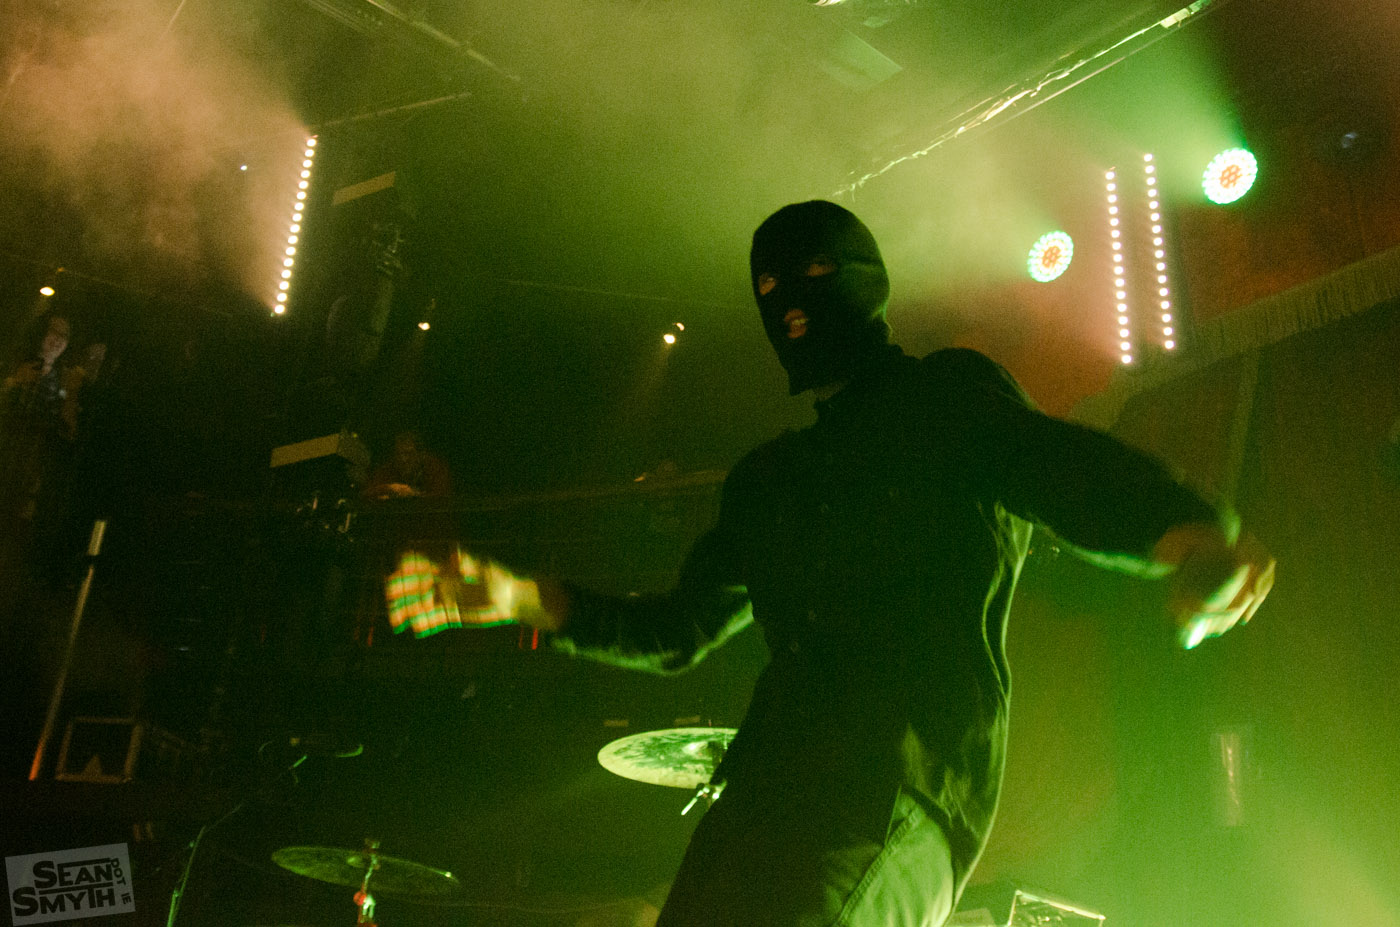 twenty-one-pilots-at-the-academy-by-sean-smyth-16-11-14-10-of-41_15783152196_o